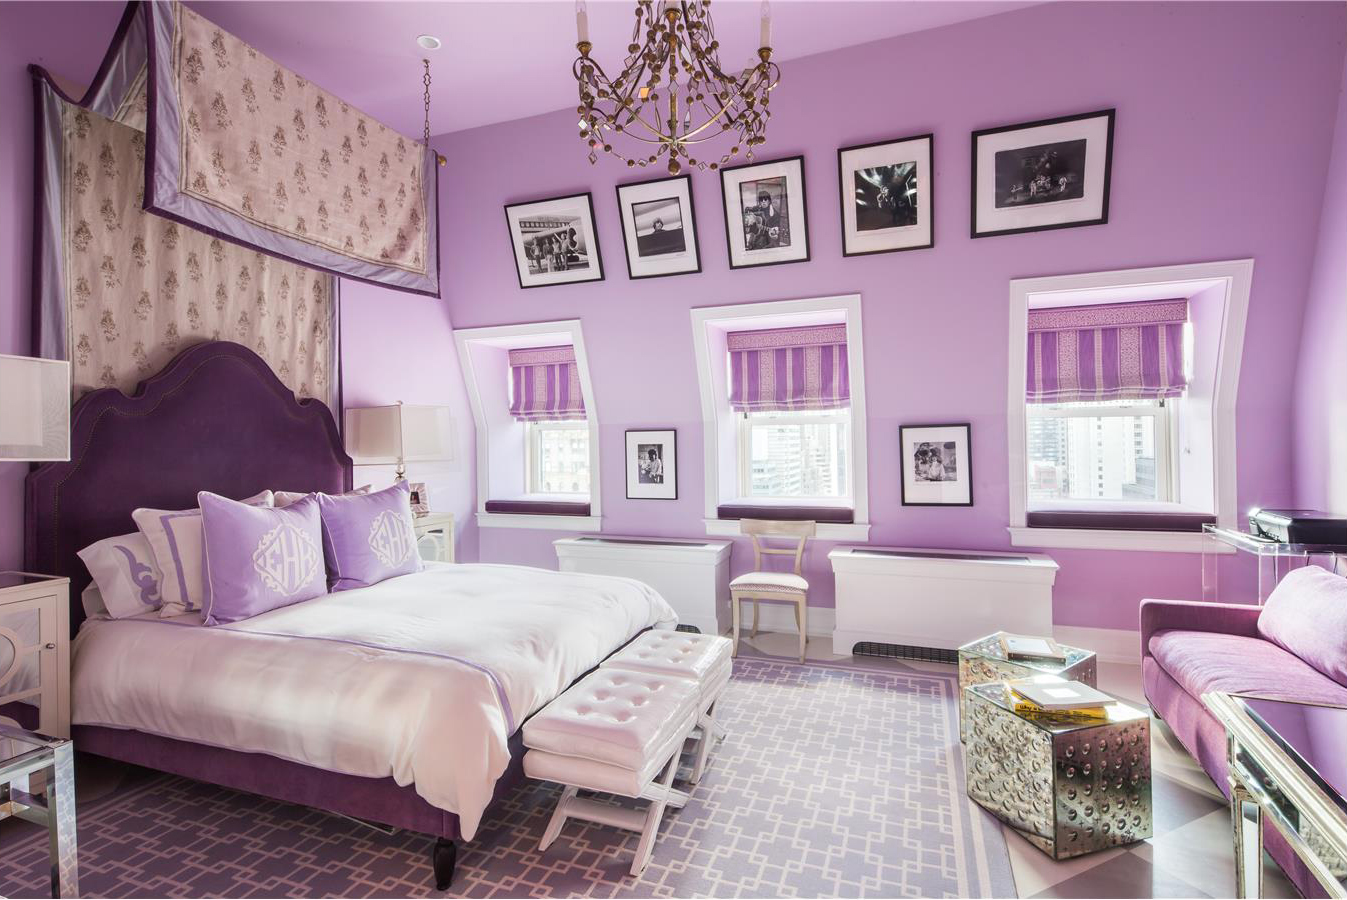 An elegant girl's bedroom.